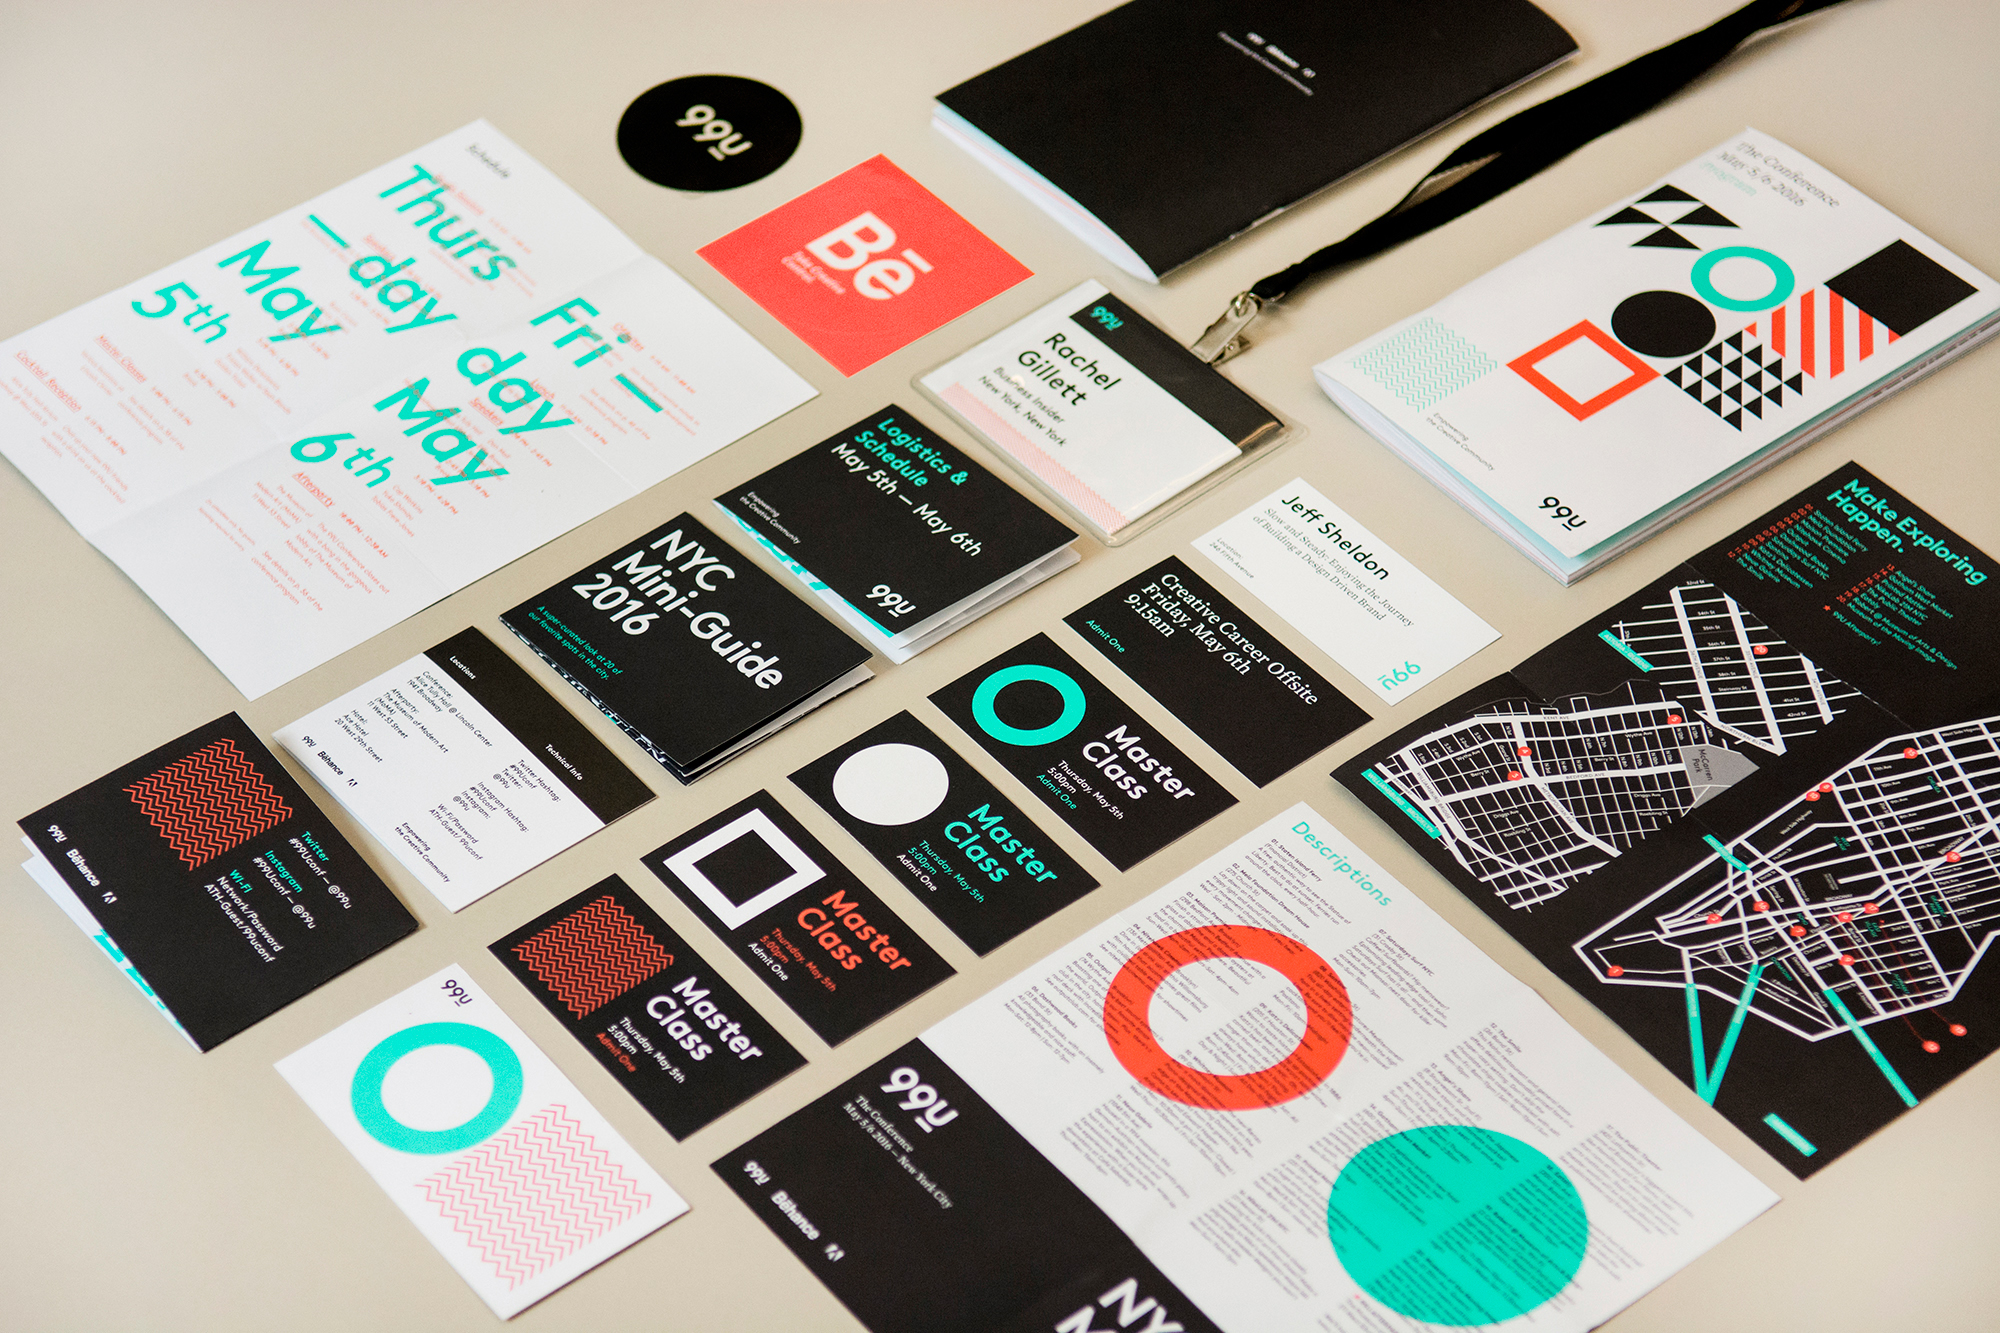 Preferenza 10 Best Branding & Corporate Identity Design Examples EY42